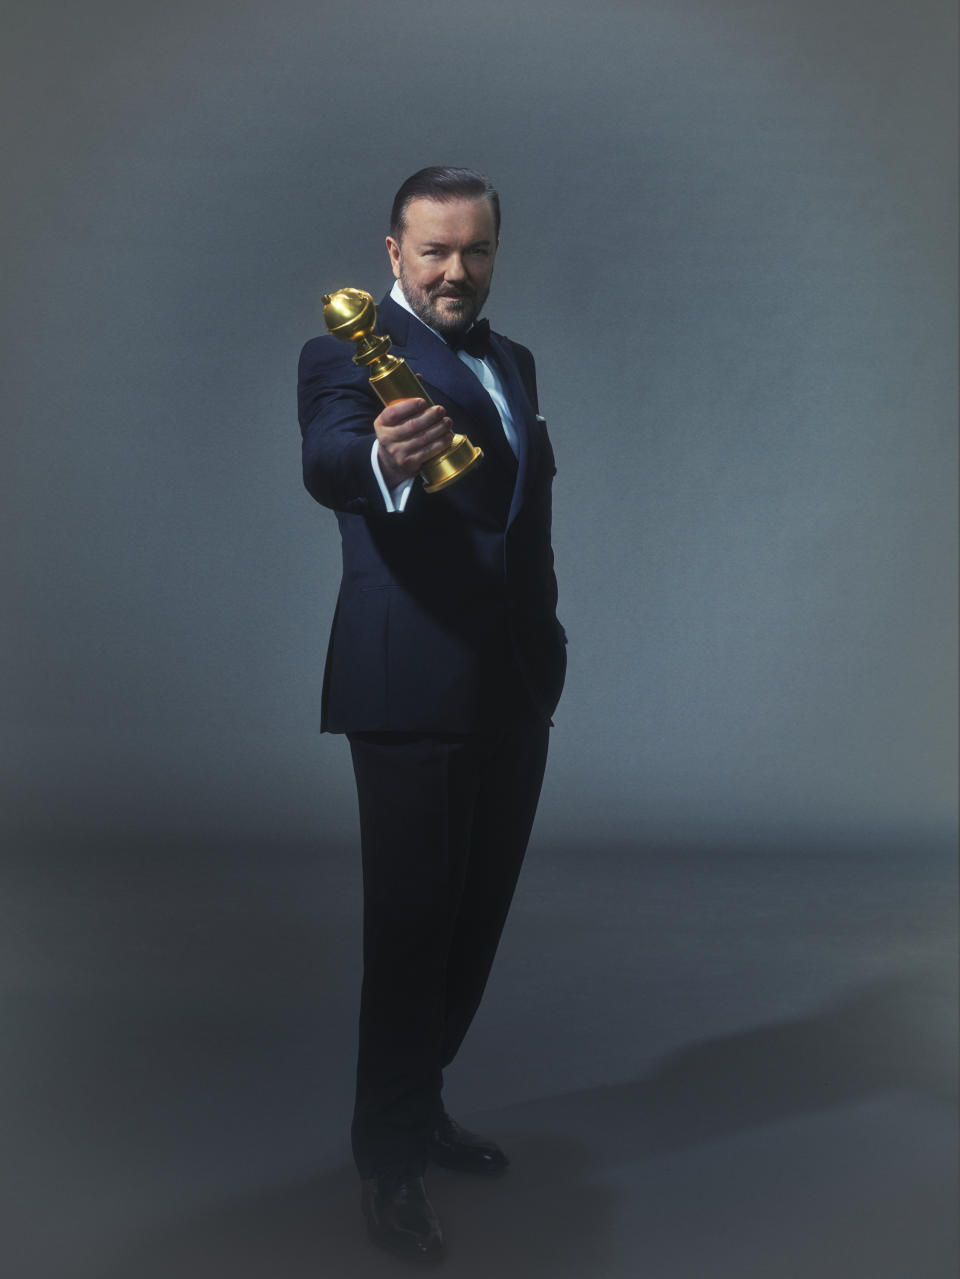 GOLDEN GLOBE AWARDS -- Season: 77 -- Pictured -- Ricky Gervais, Host--  (Photo by: Todd Antony/NBC/NBCU Photo Bank via Getty Images)